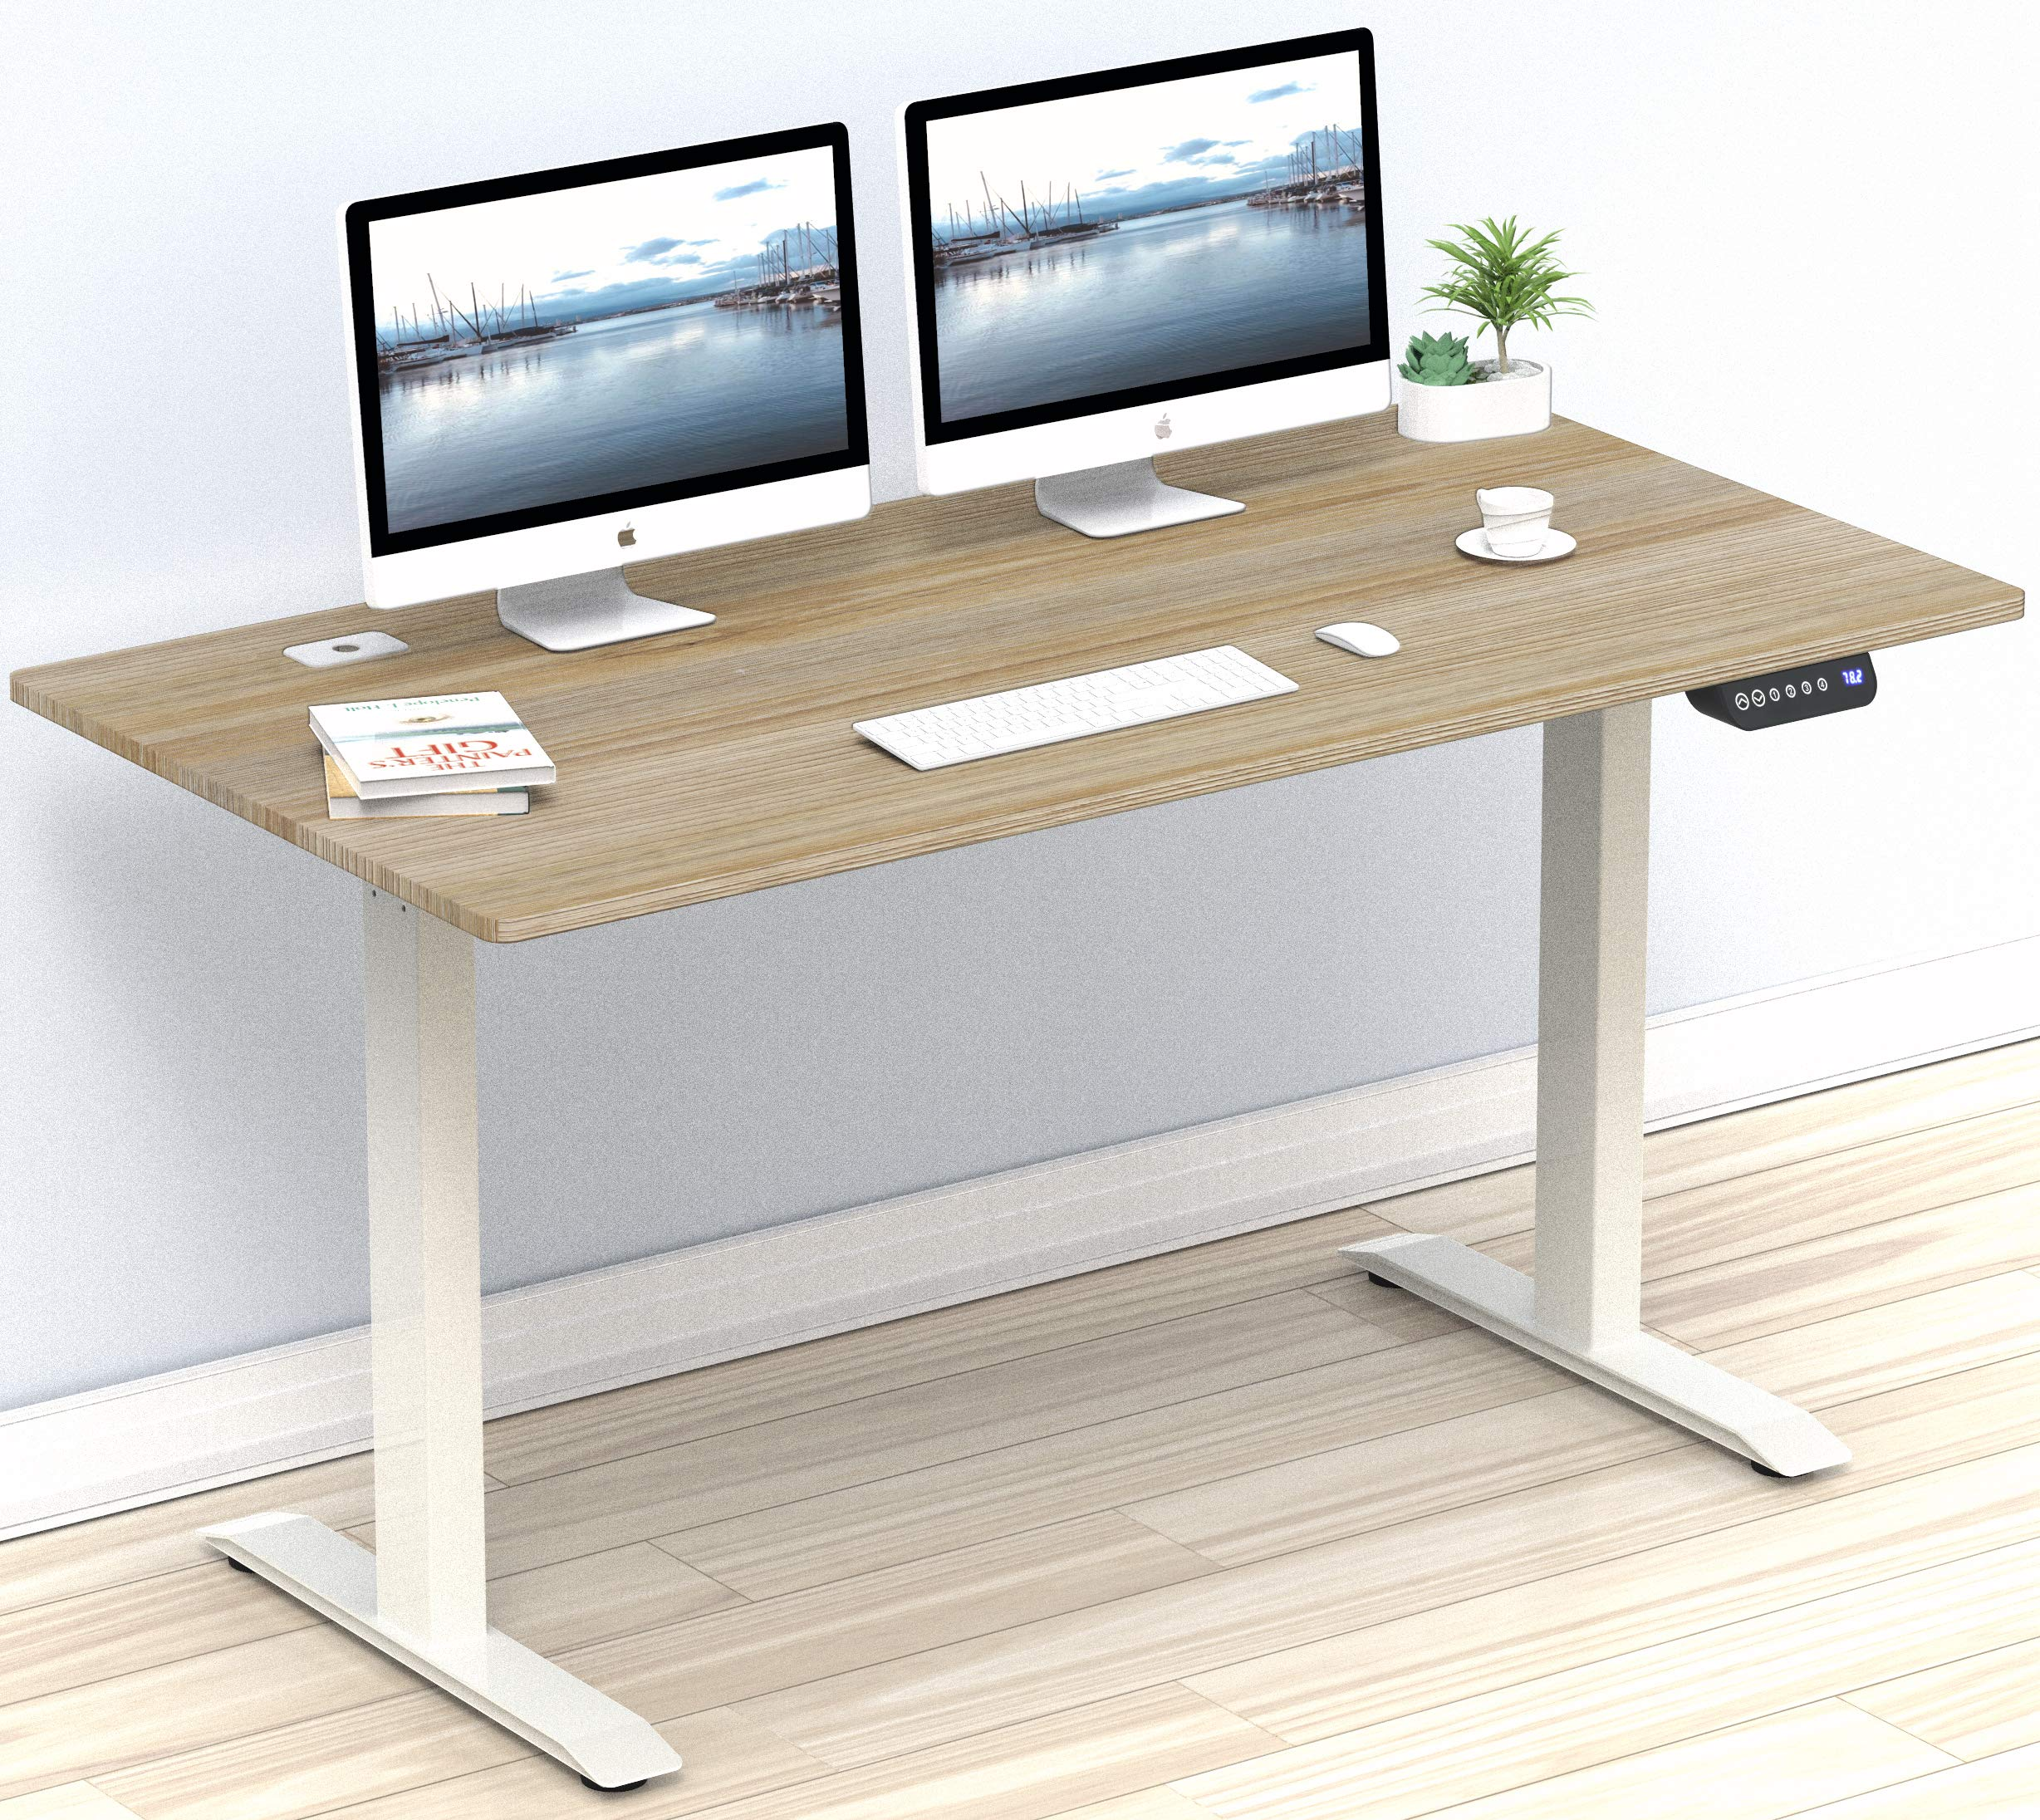 SHW 55-Inch Large Electric Height Adjustable Computer Desk, 55 x 28 Inches, Oak by SHW